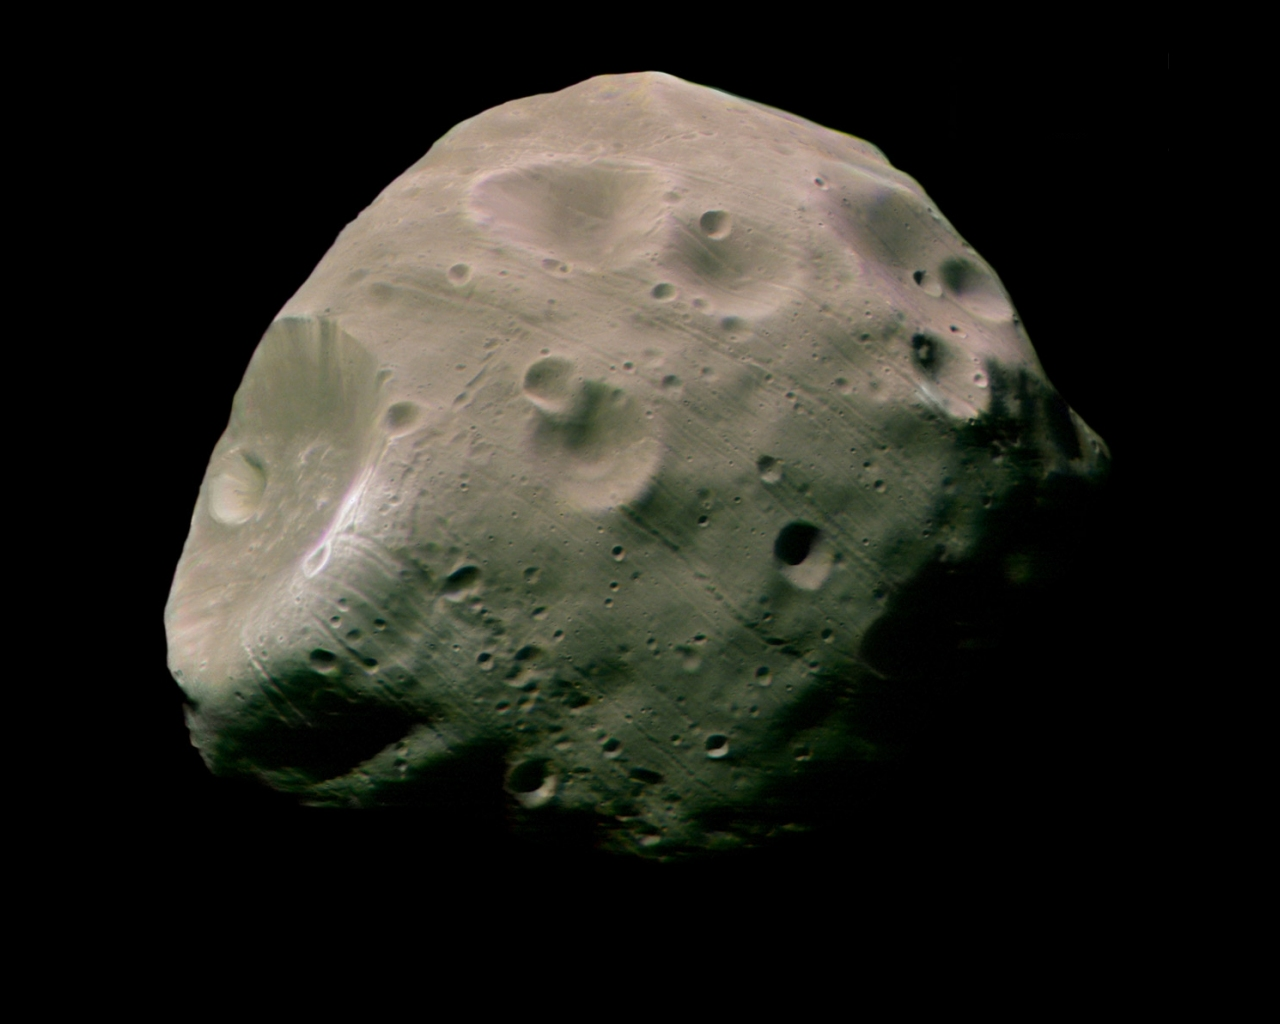 This image, taken by the High Resolution Stereo Camera (HRSC) on board ESA's Mars Express spacecraft, is one of the highest-resolution pictures so far of the Martian moon Phobos.